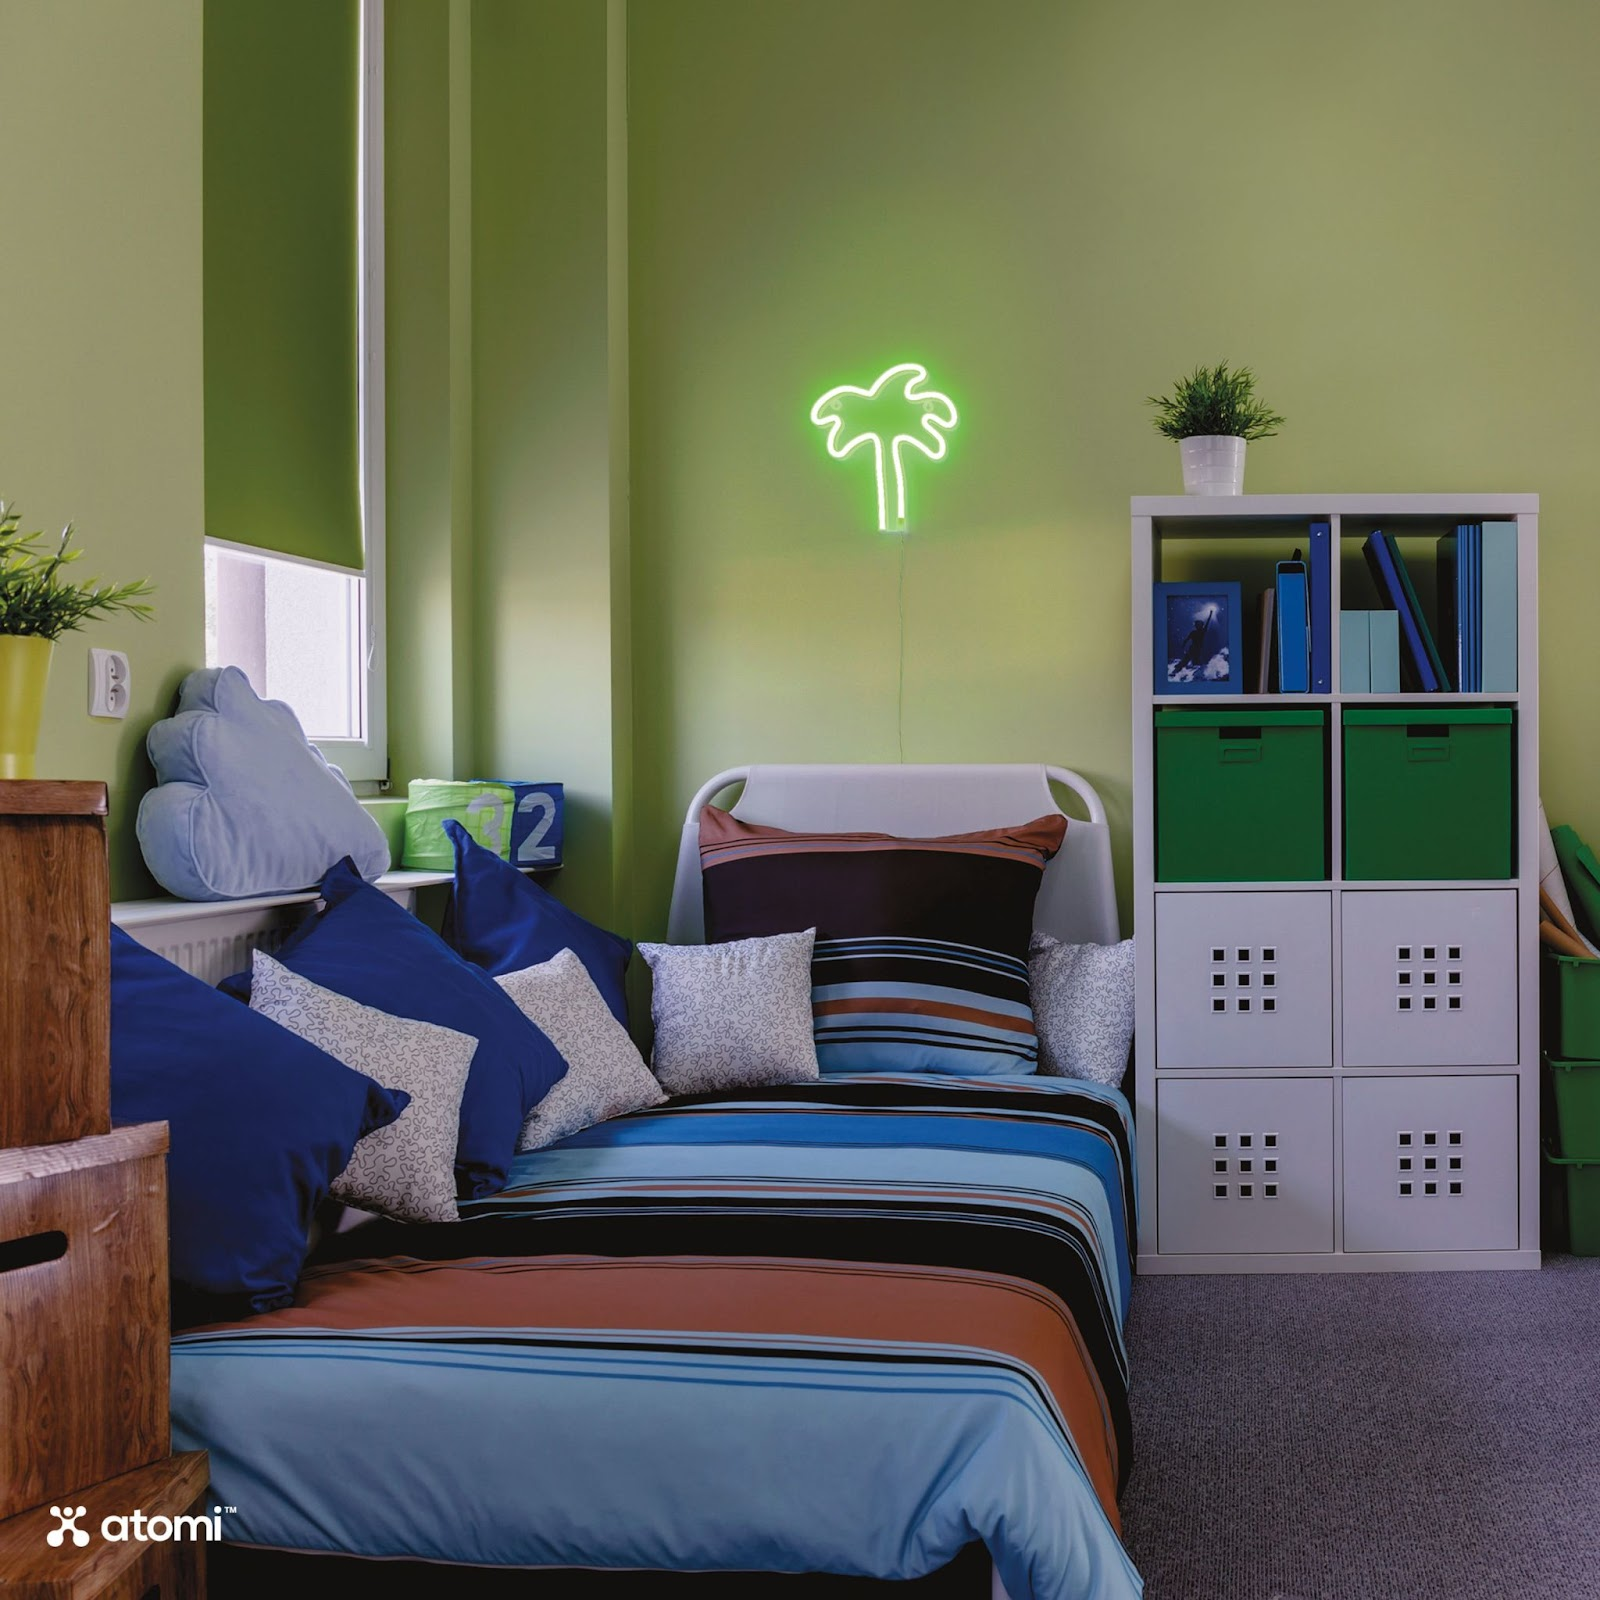 Modern Look with Neon Lights